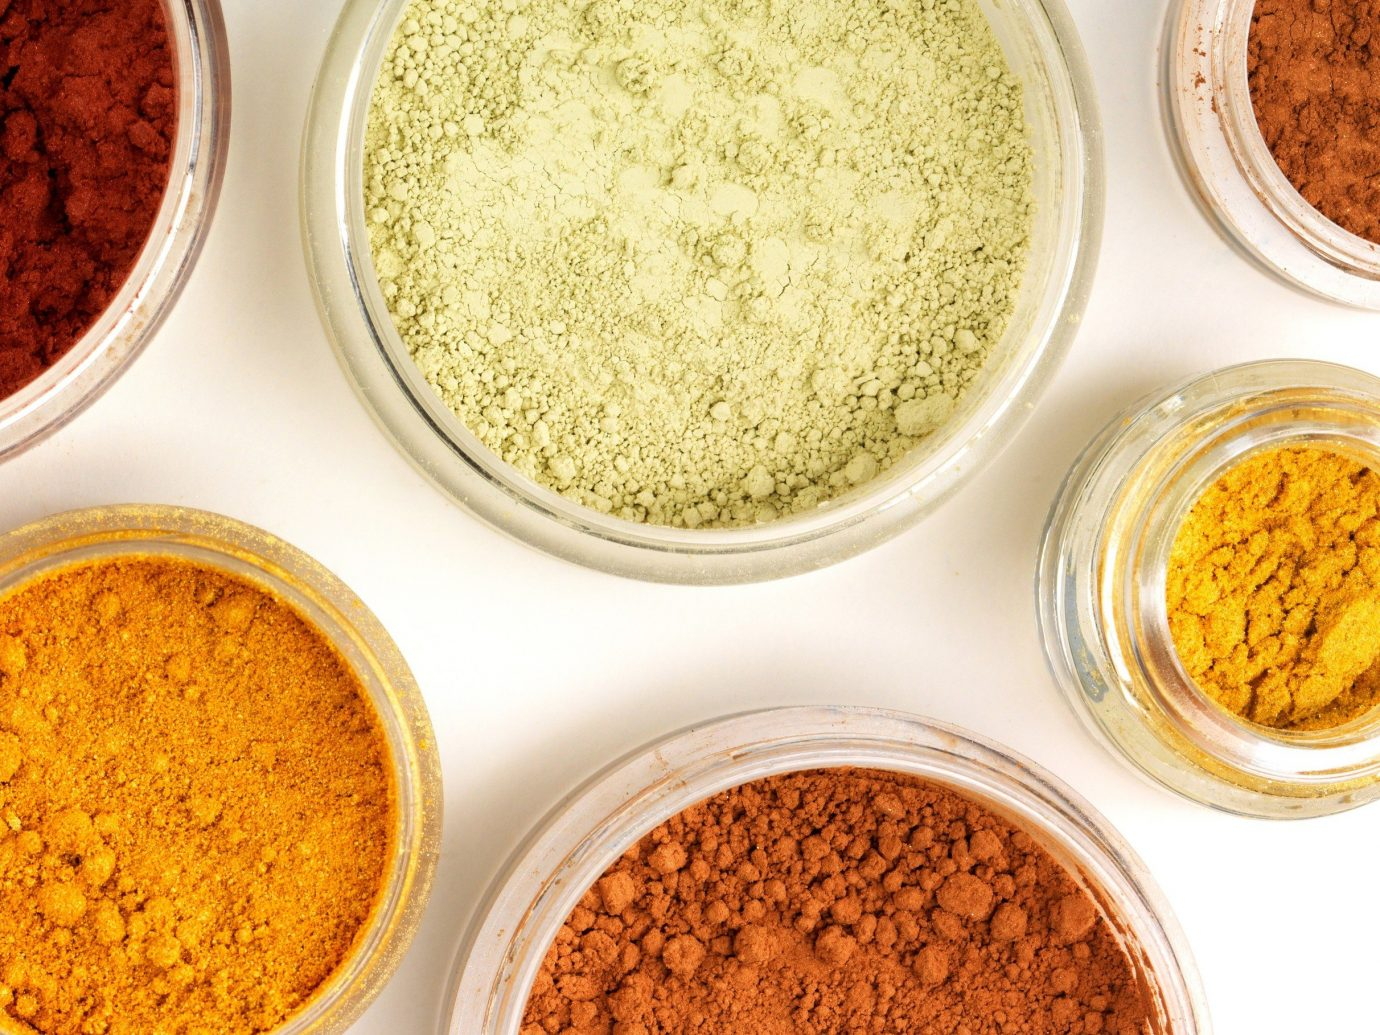 Style + Design food plate cup table turmeric indoor spice orange produce grass family spice mix curry powder powder crop flavor edible seed bread baked vegetable